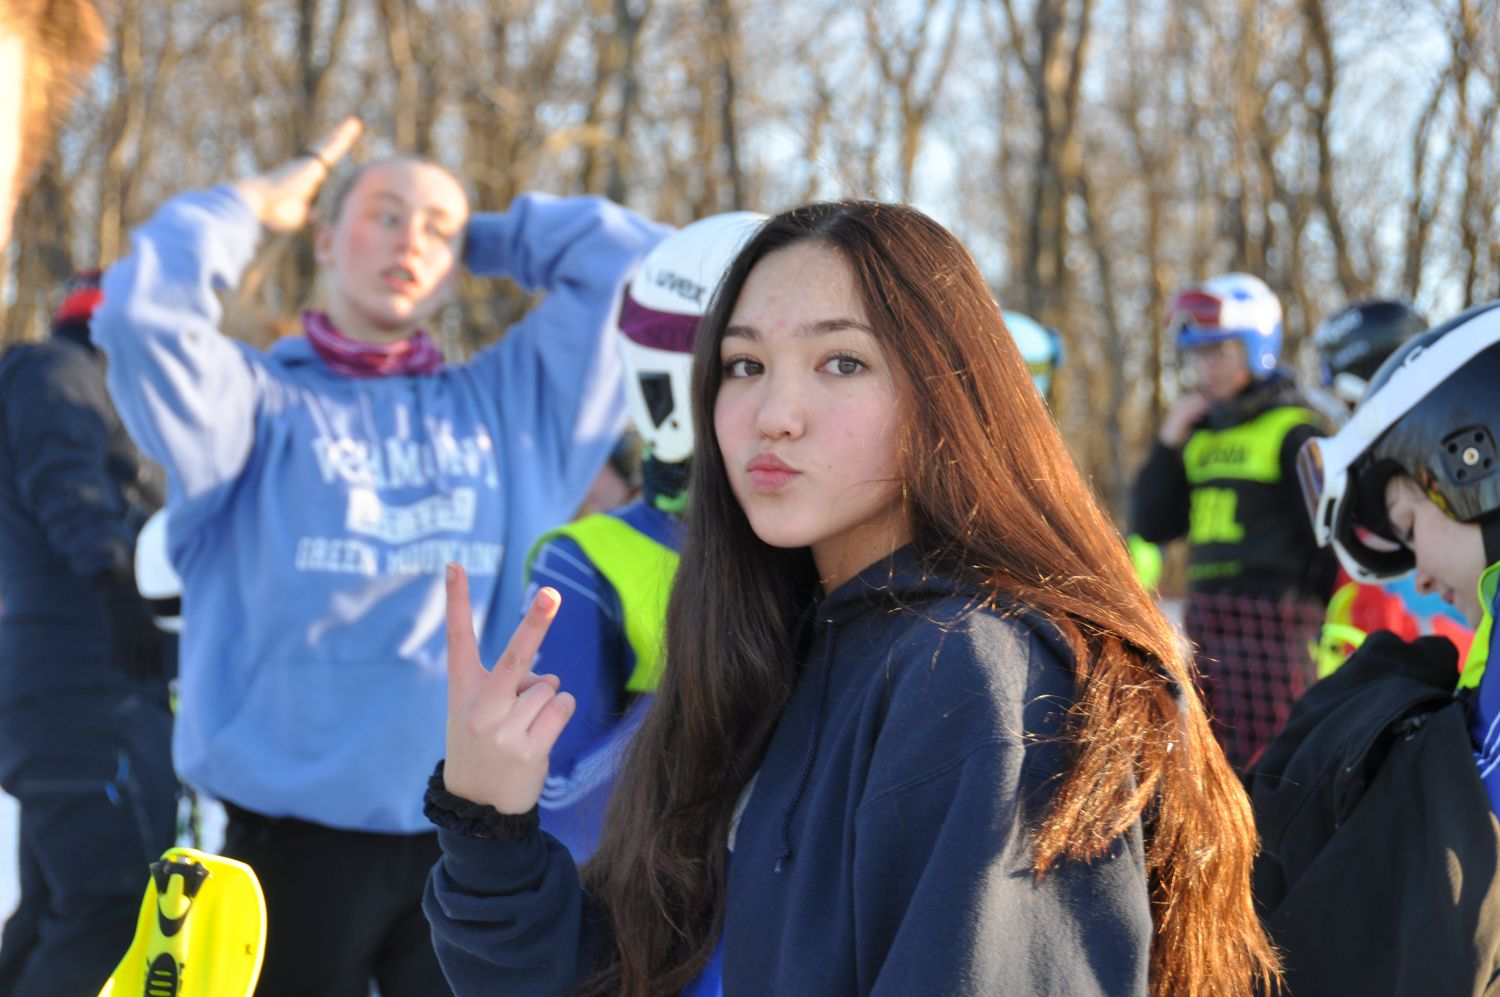 Rachel with the infamous hand gesture| JV Championships